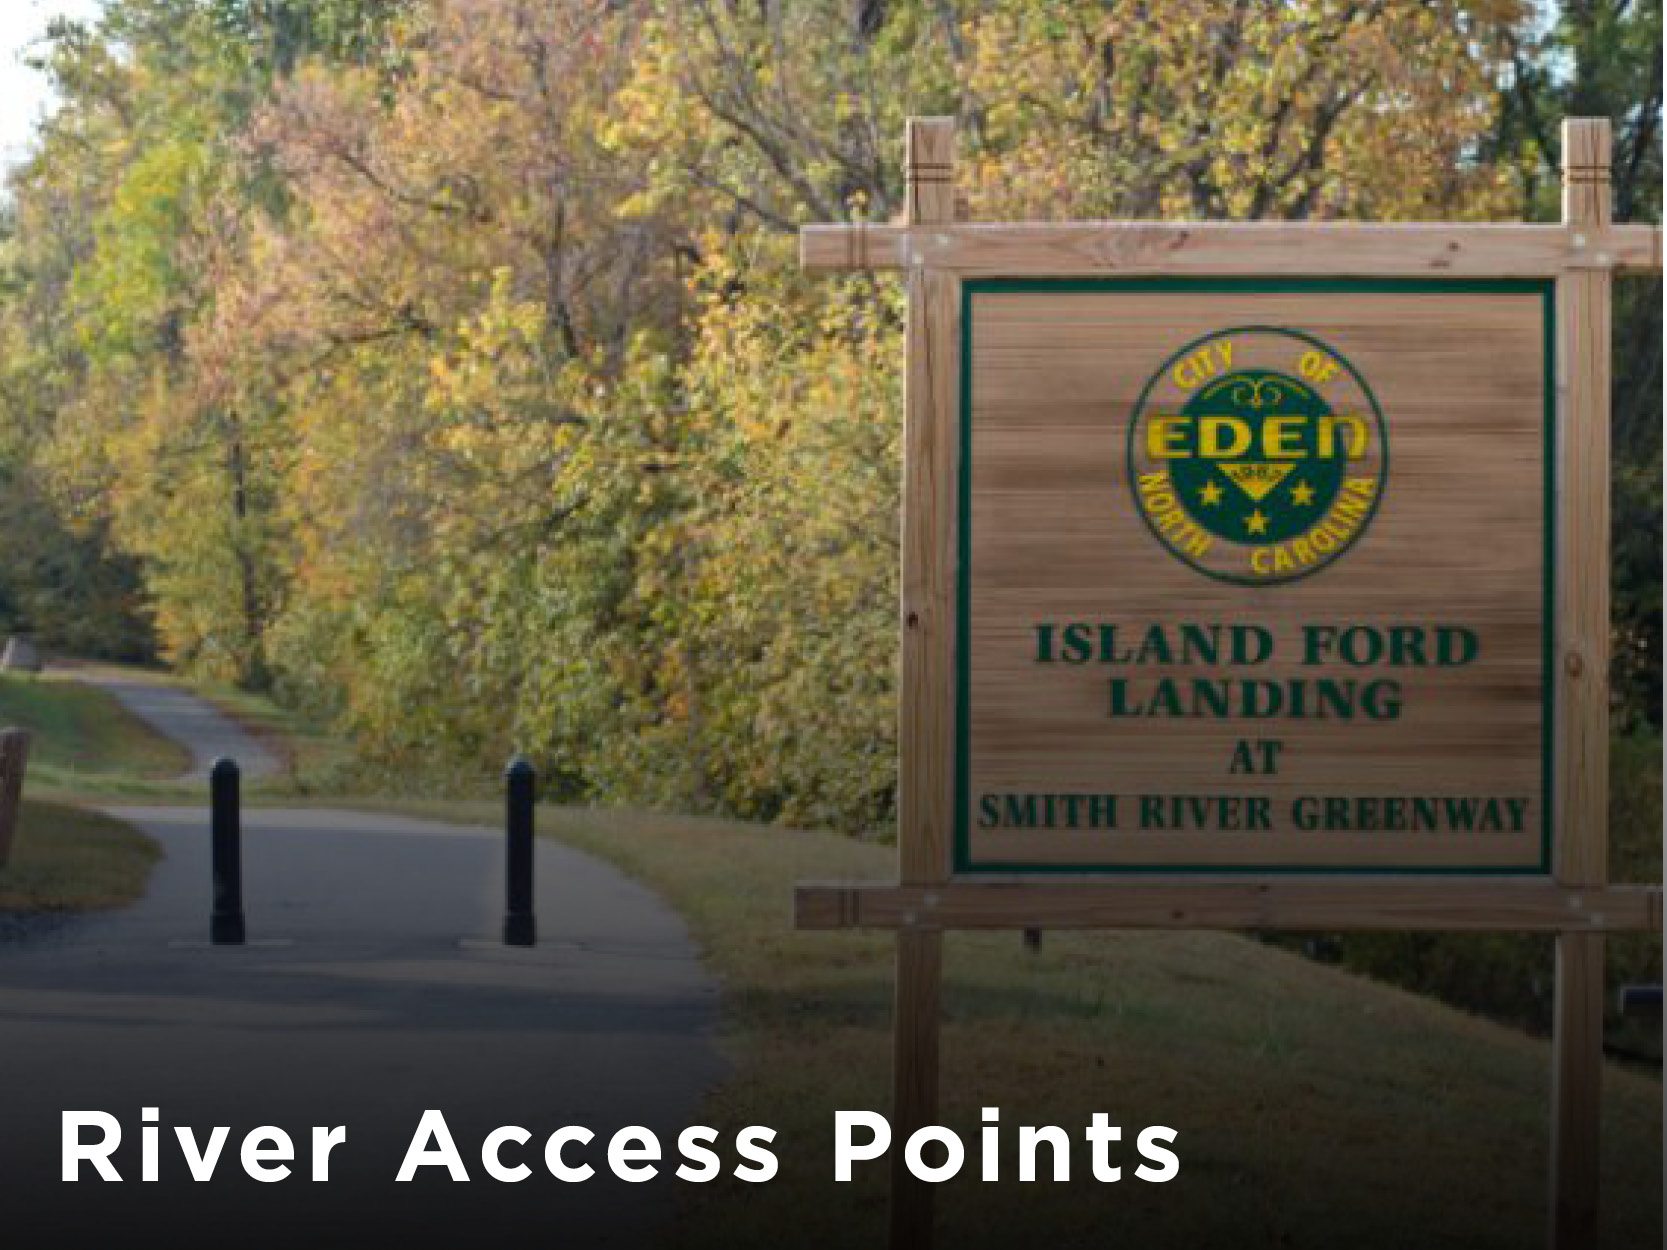 River Access Points